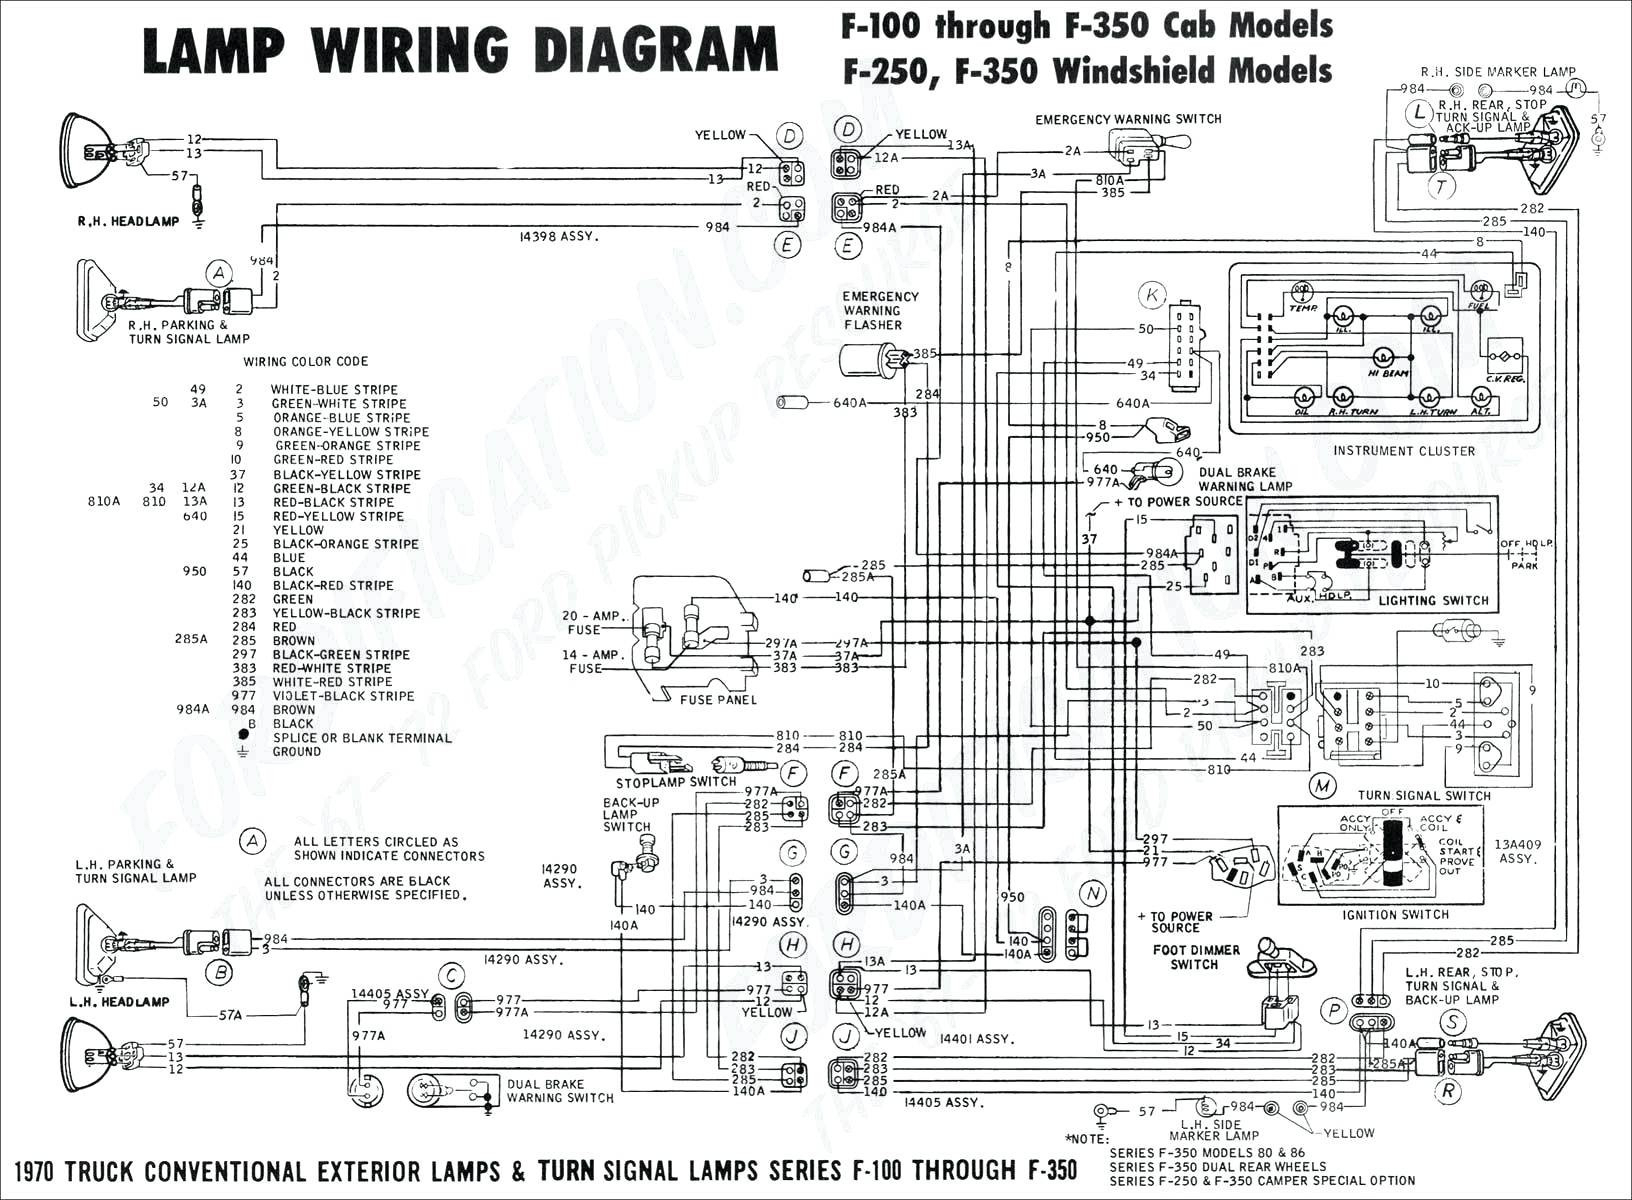 02 silverado trailer wiring diagram